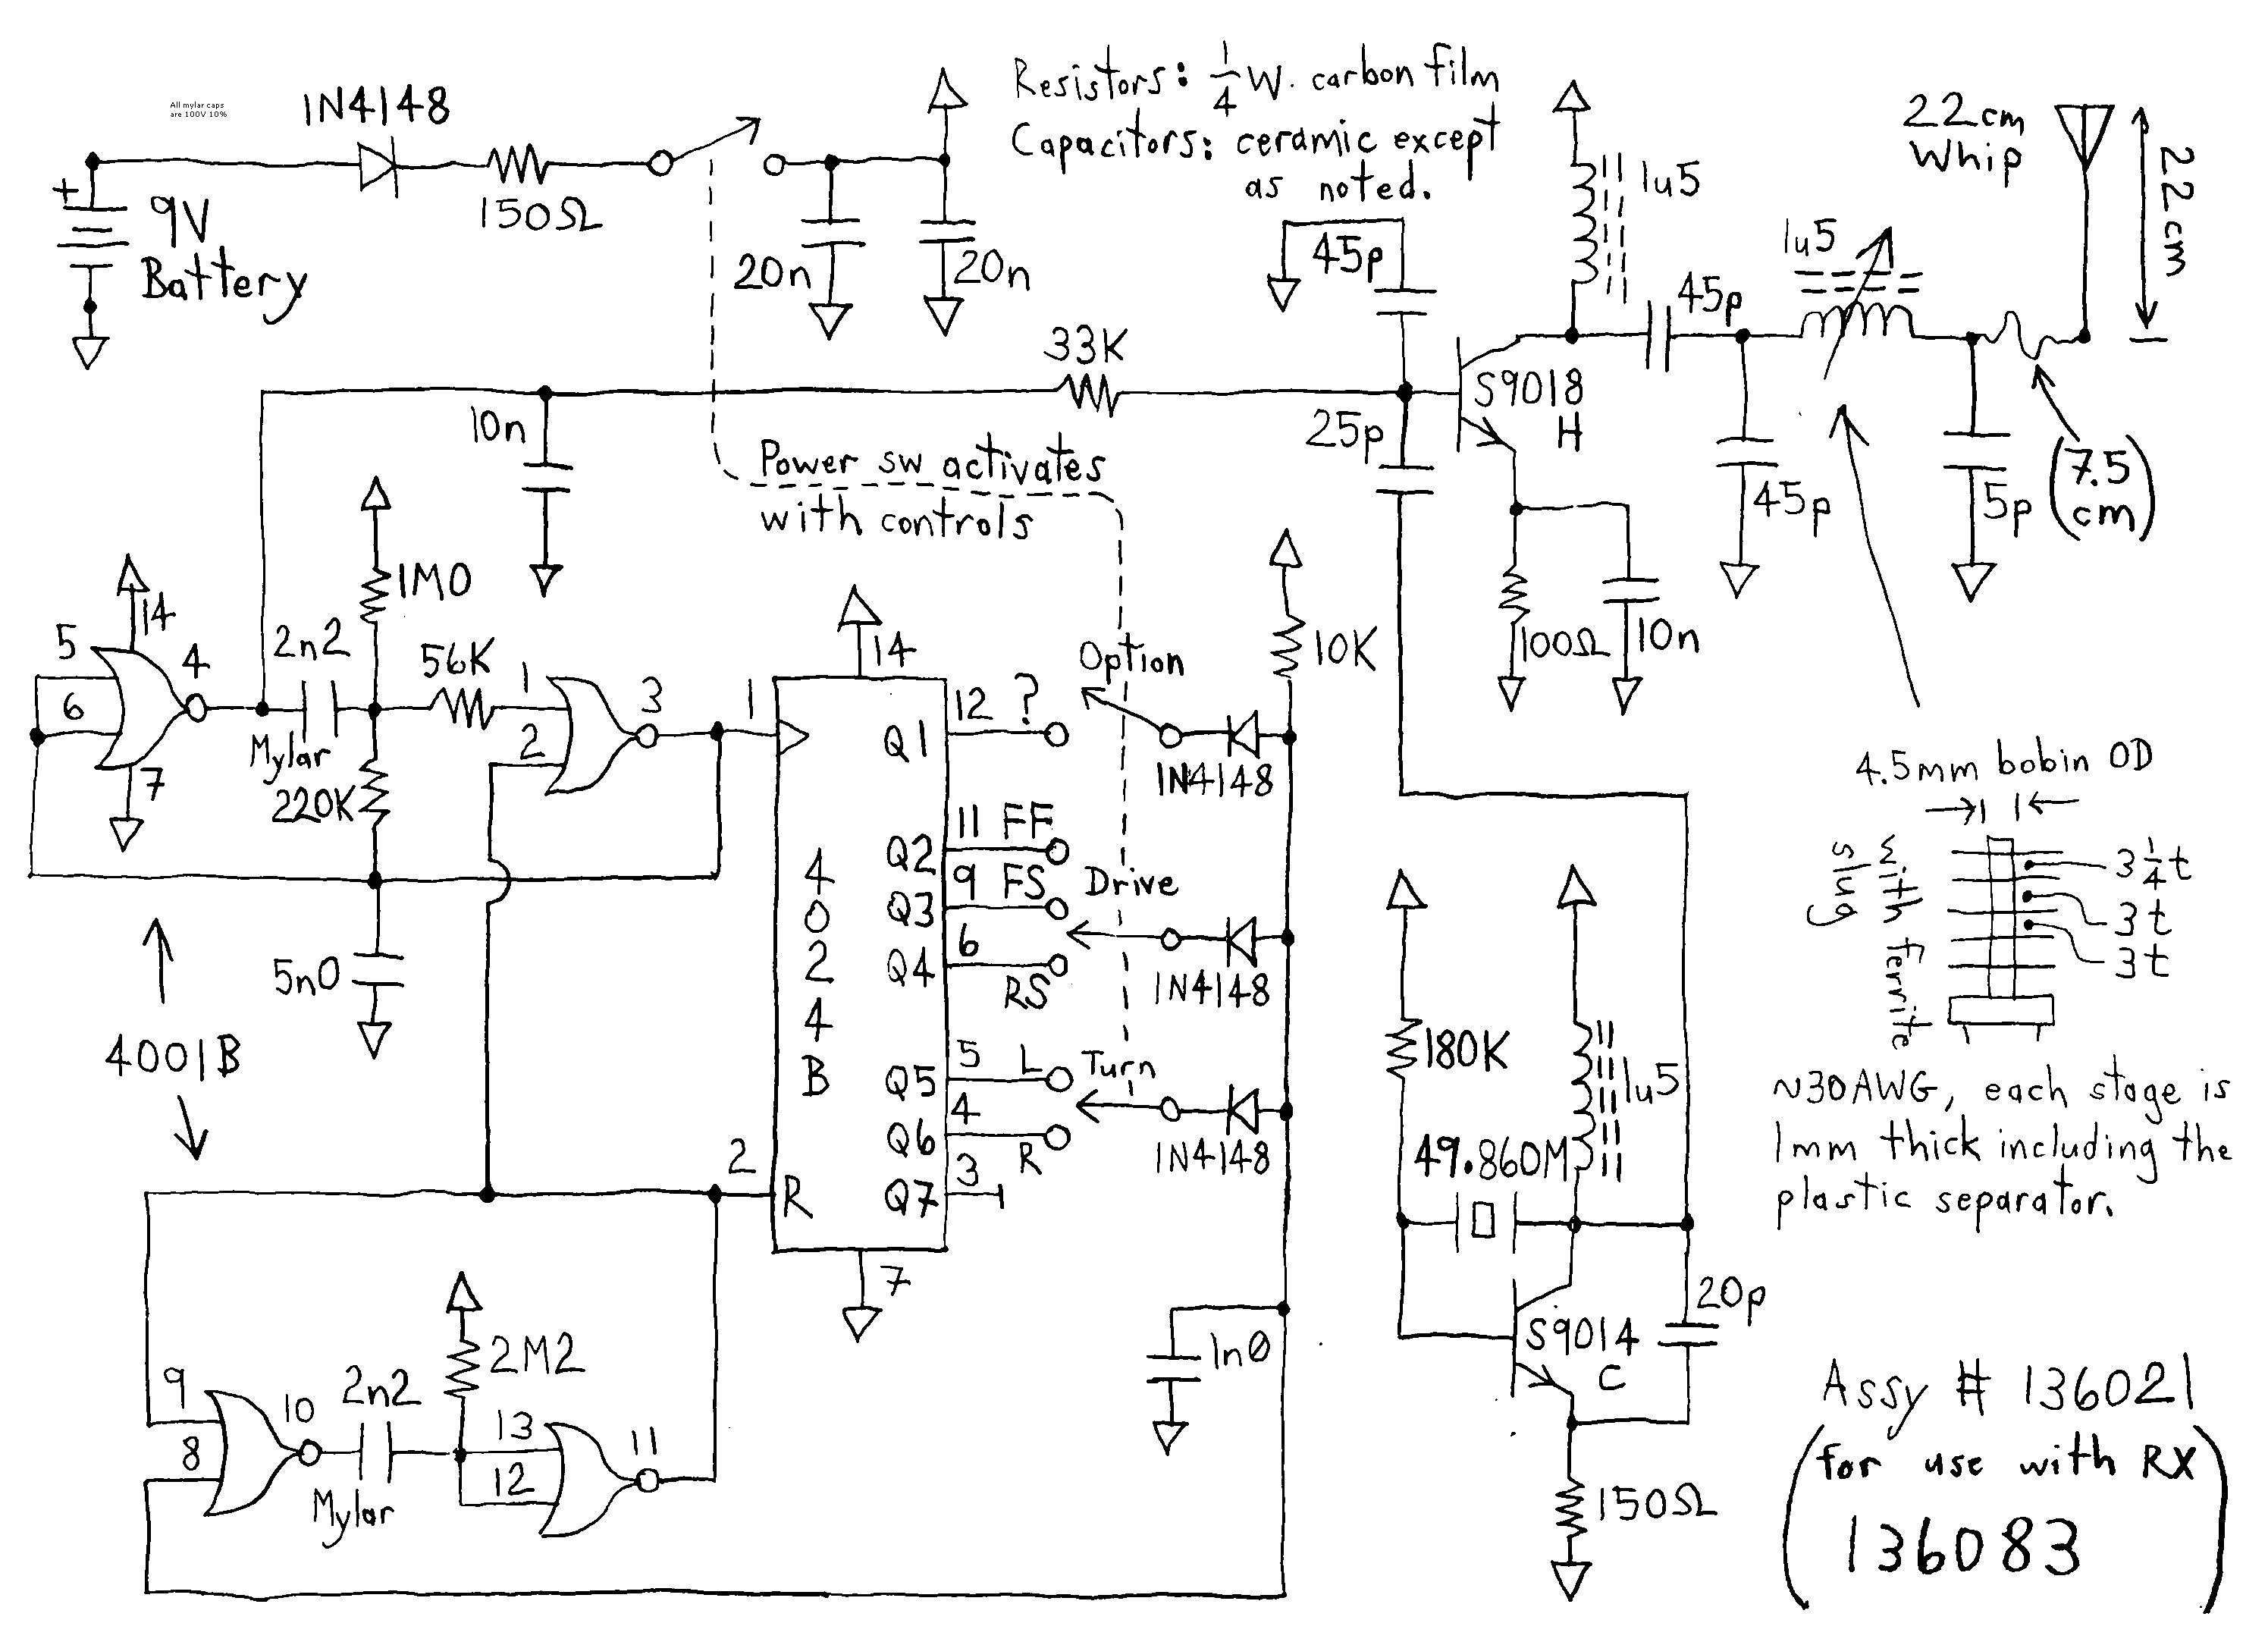 Wiring Diagram Electric Gates Fresh Wiring Diagram Electric Gates New Circuit Diagram Symbols